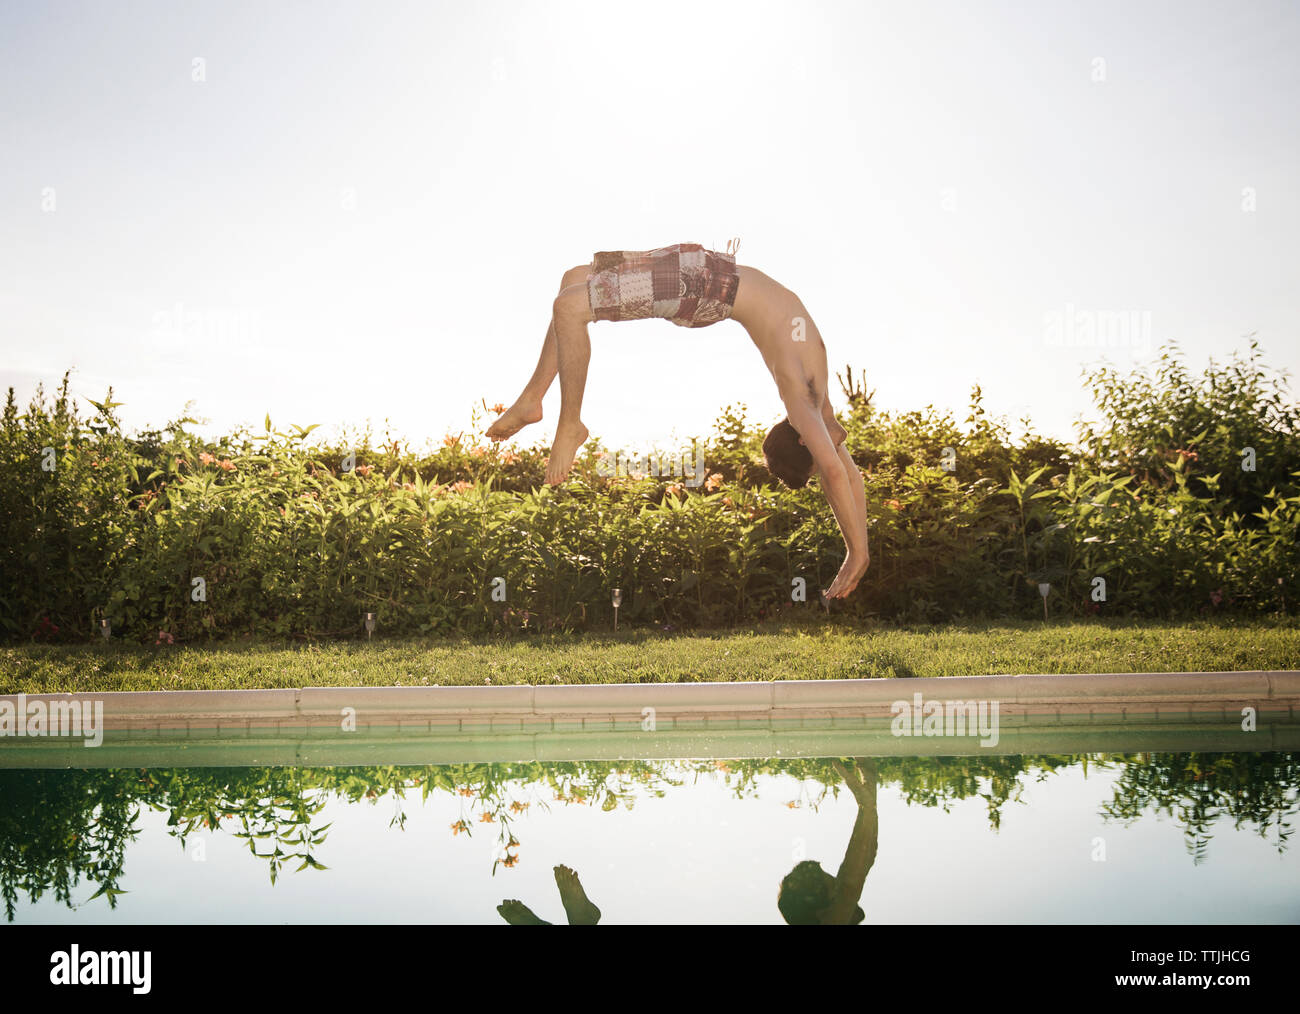 Man somersaulting into swimming pool against clear sky Stock Photo